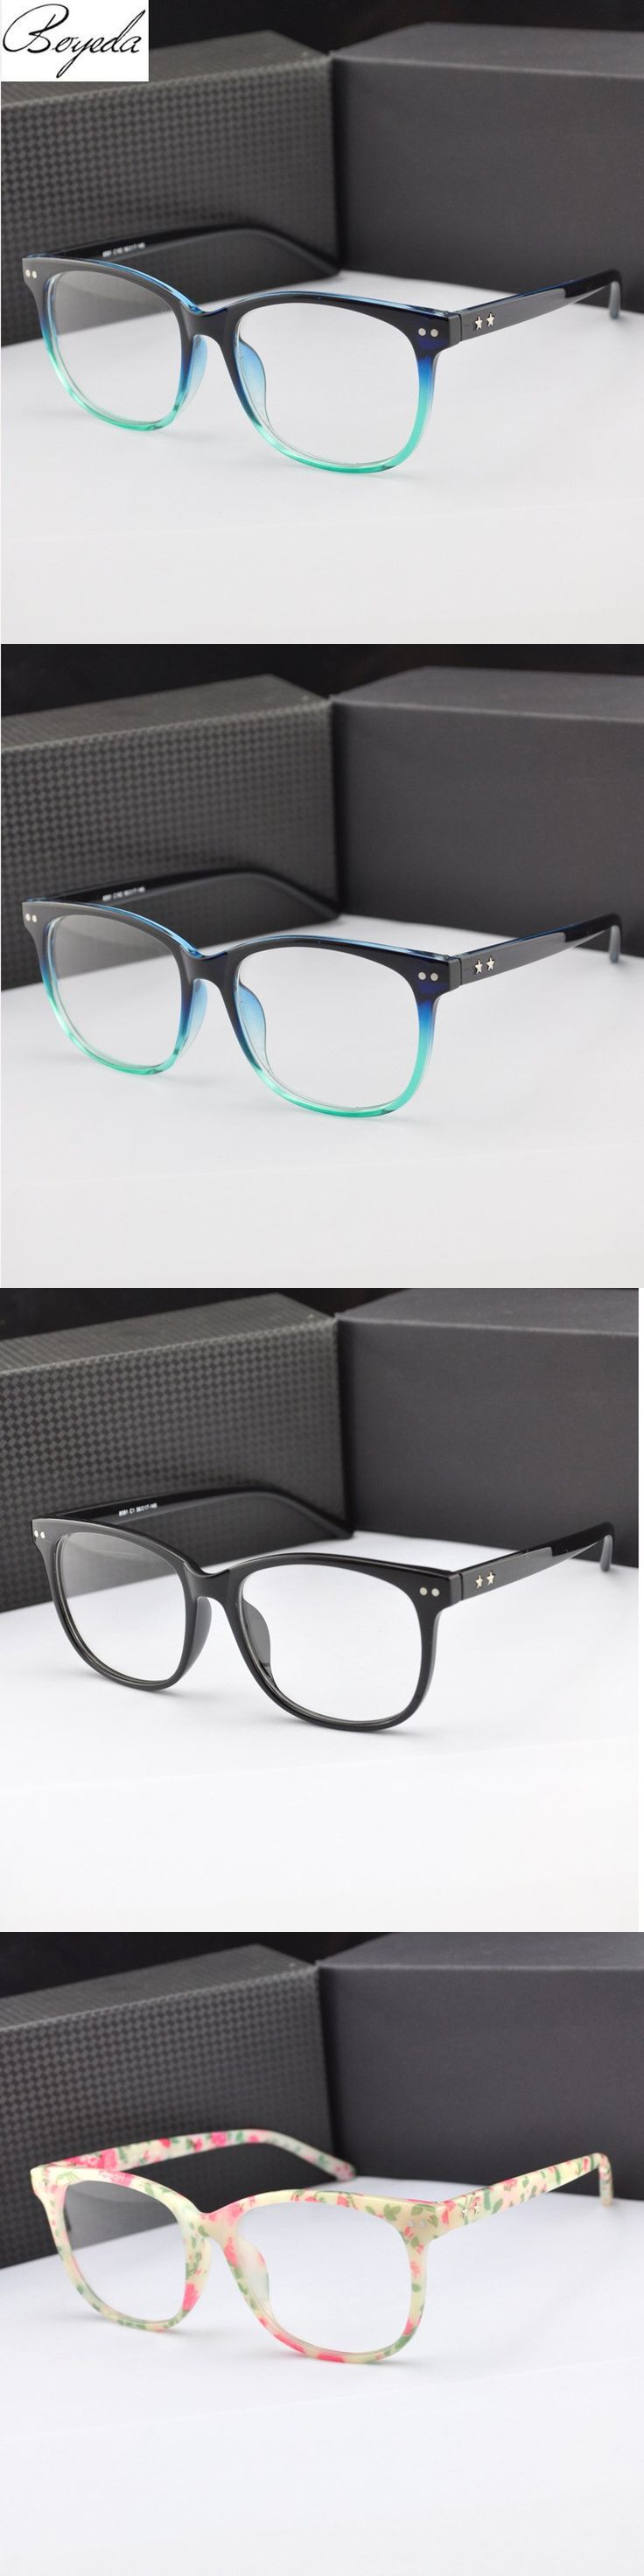 2016 Square Eyeglasses Retro Men Women Eye Glasses Female Optical Computer Eye Glasses Frame Prescription Eyewear Oculos De Grau $5.09